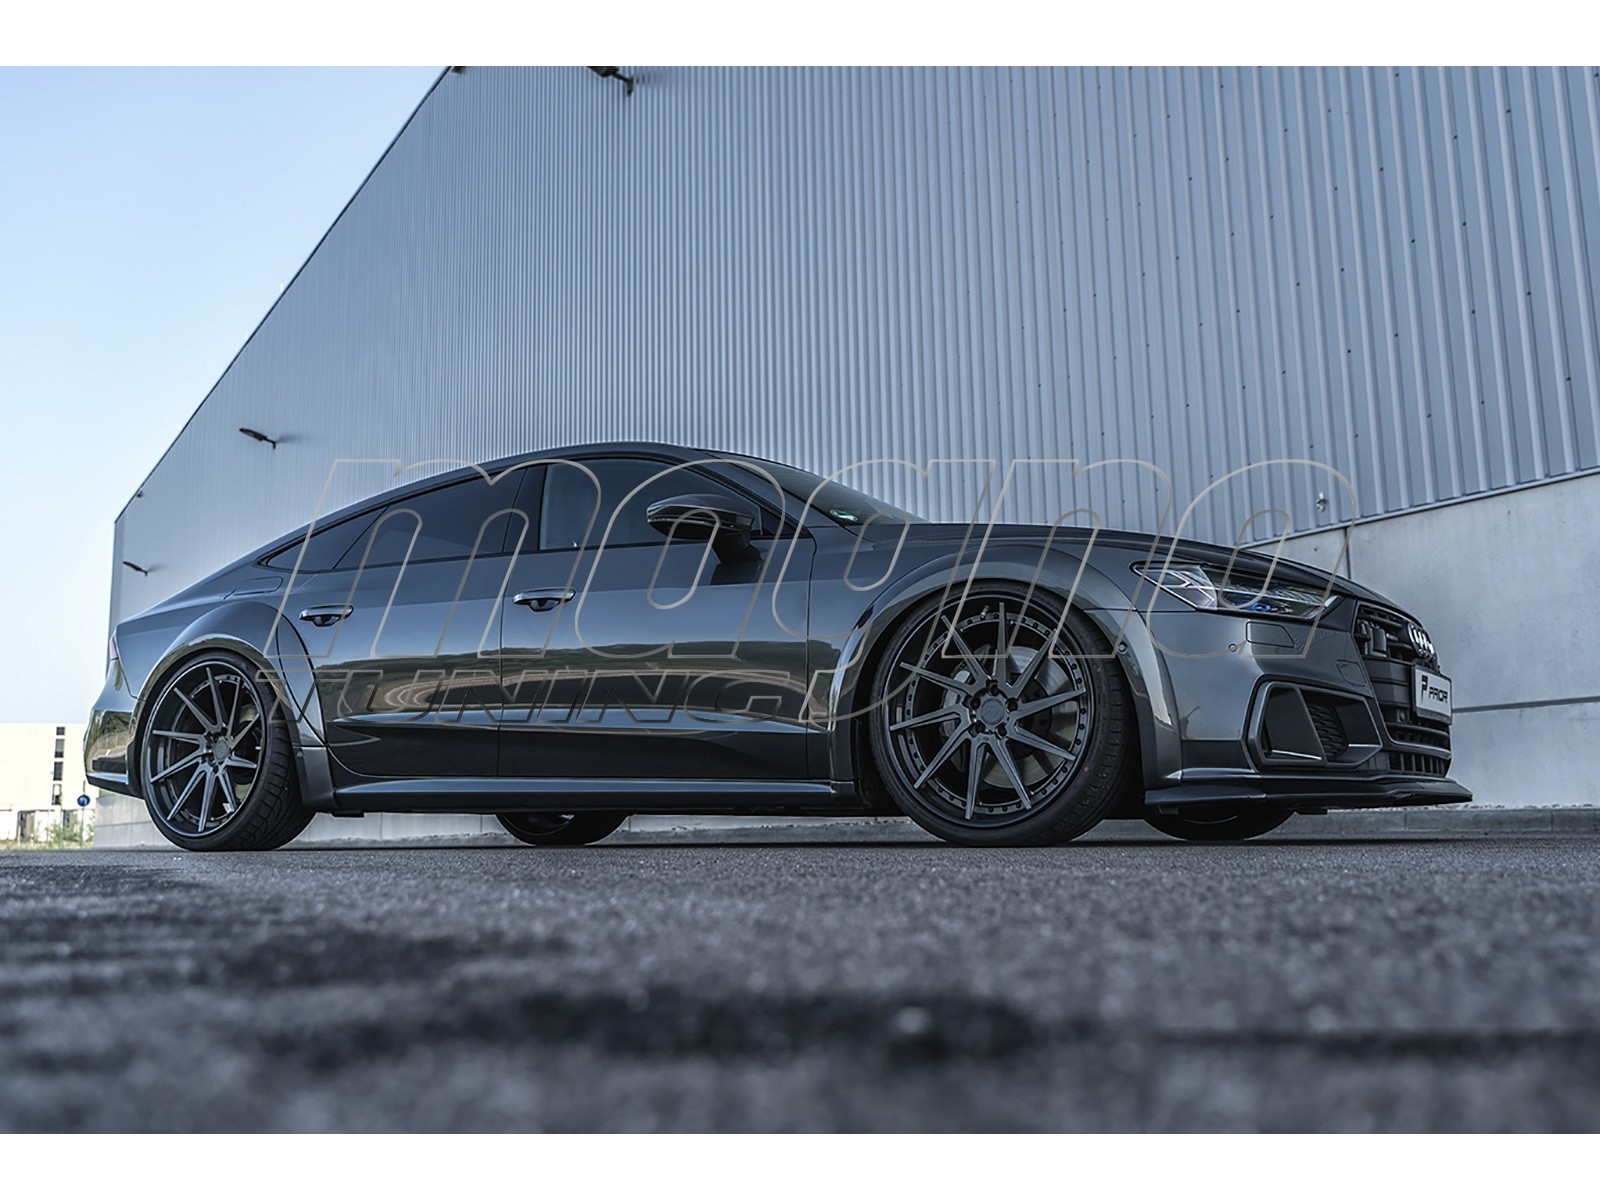 Audi A7 4K8 Exclusive Wheel Arch Extensions